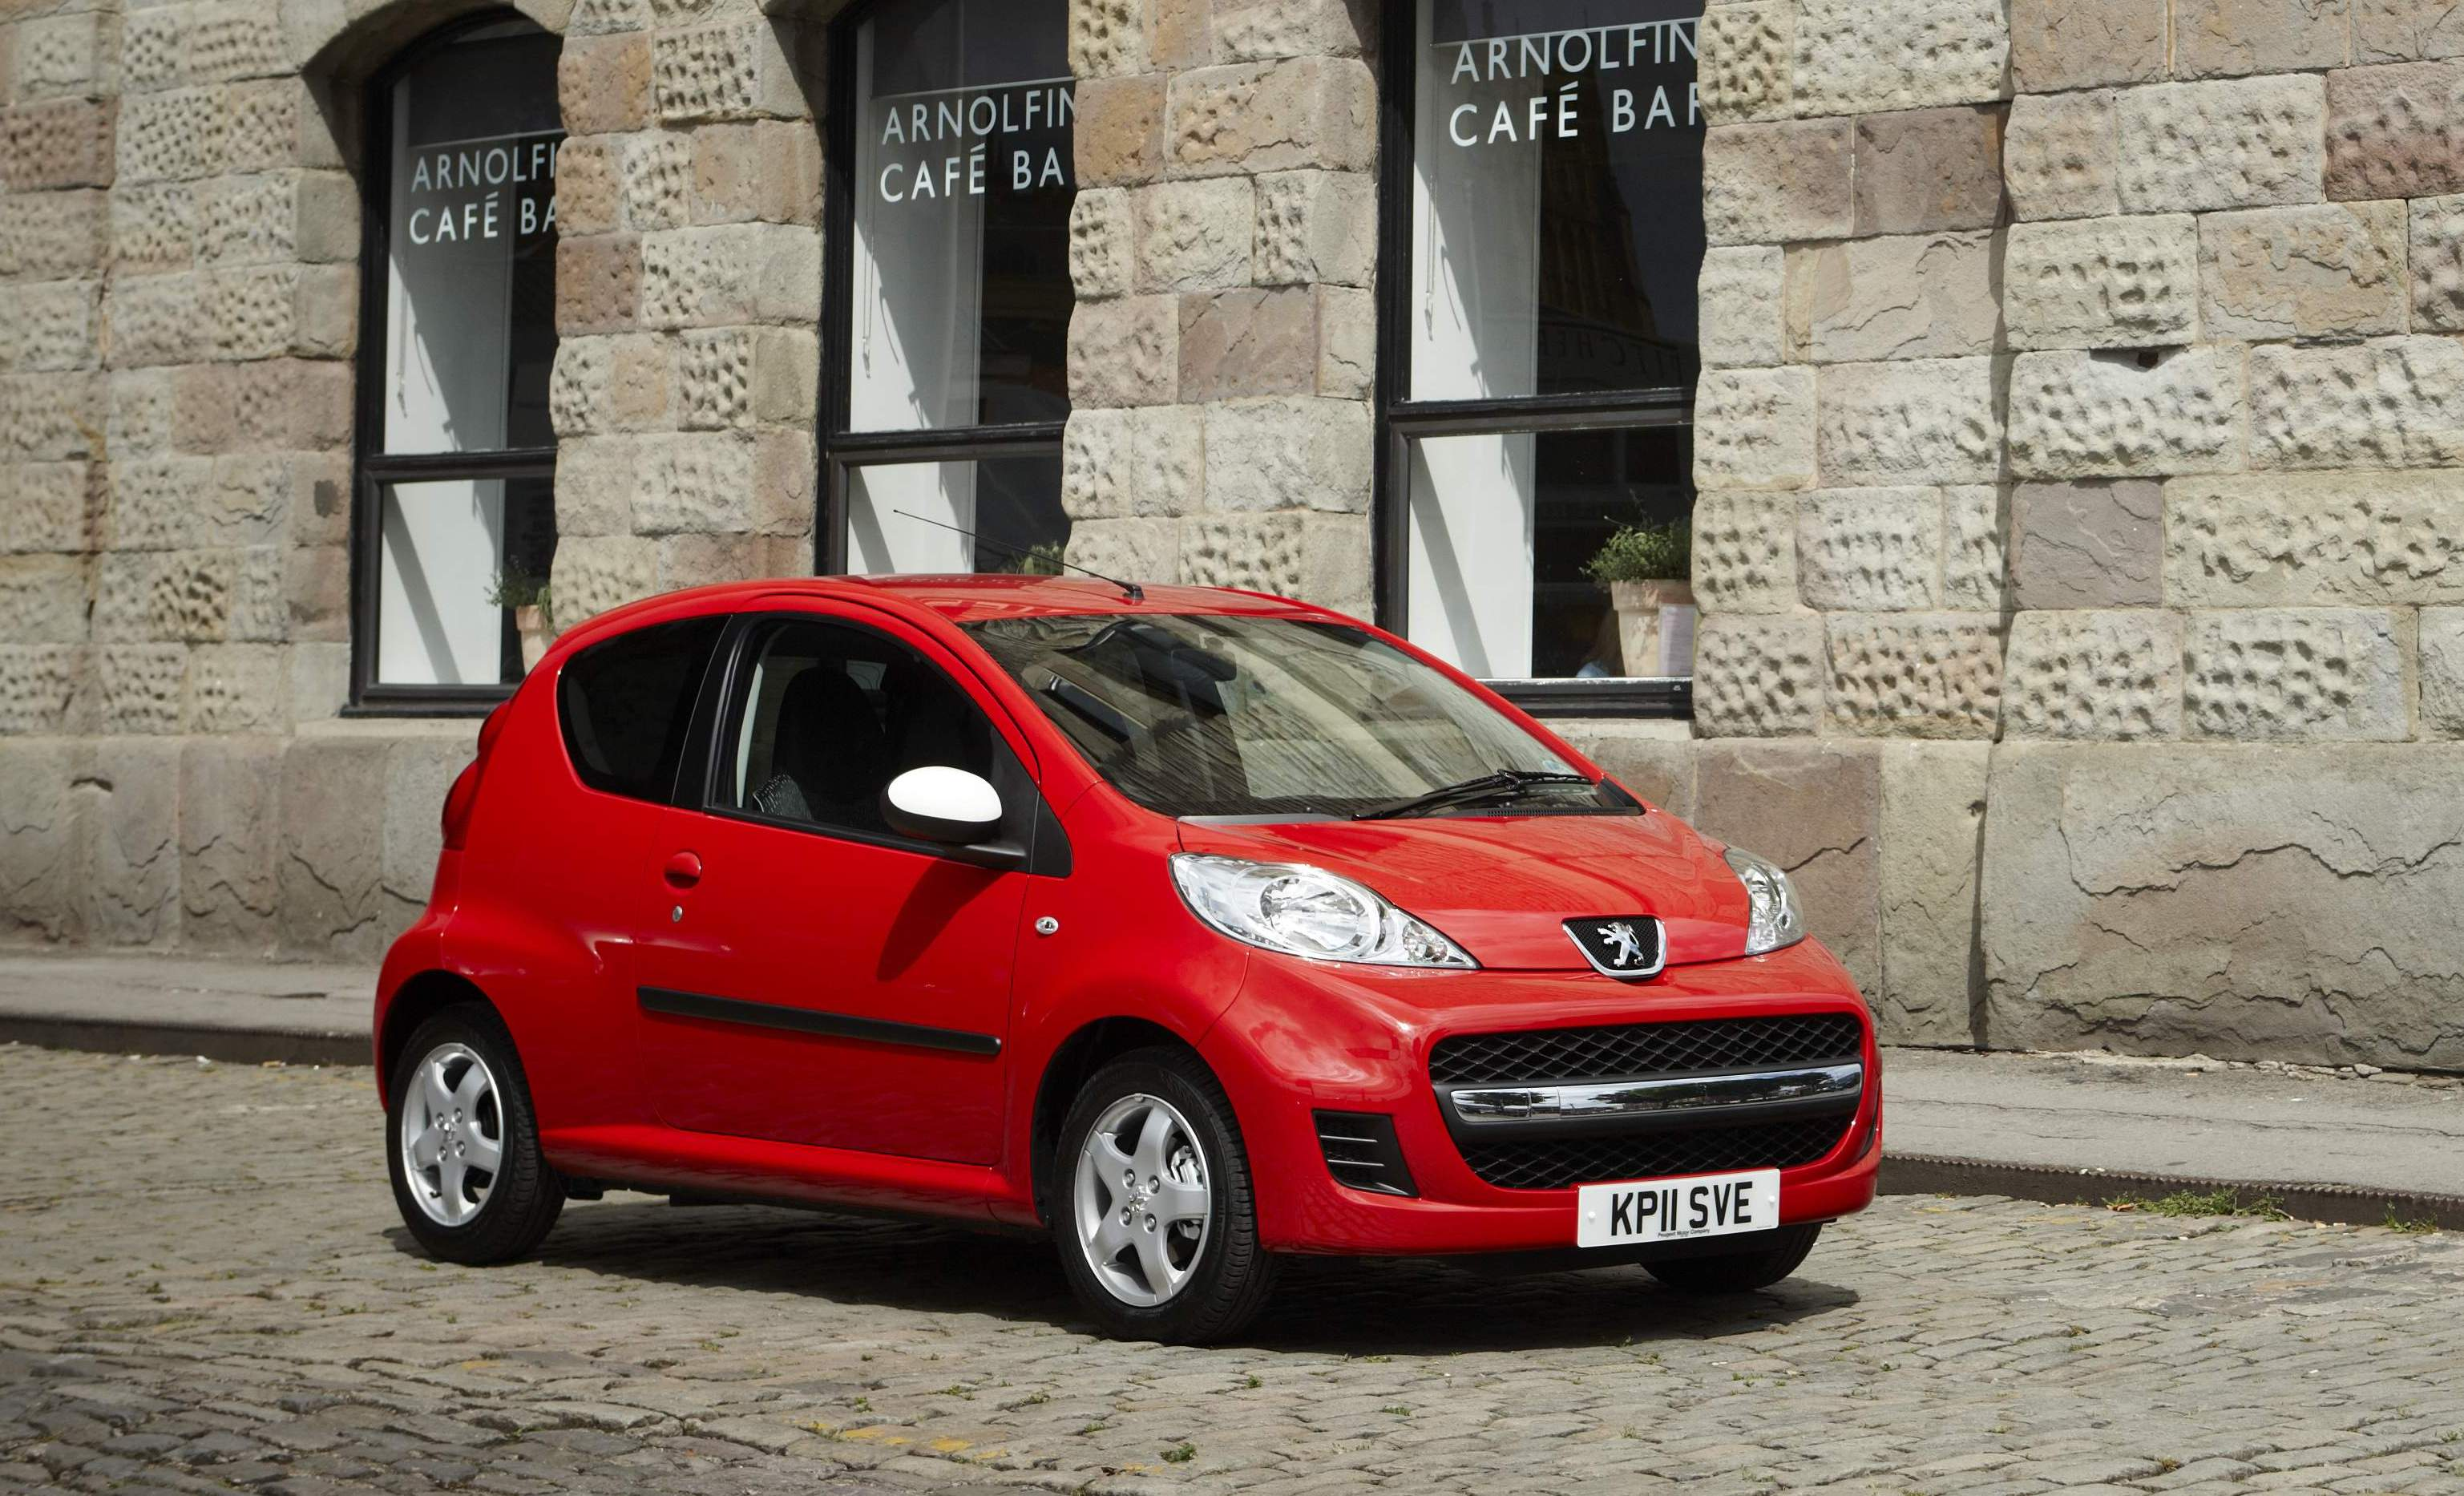 Peugeot 107 Sportium Special Edition - Car Write Ups